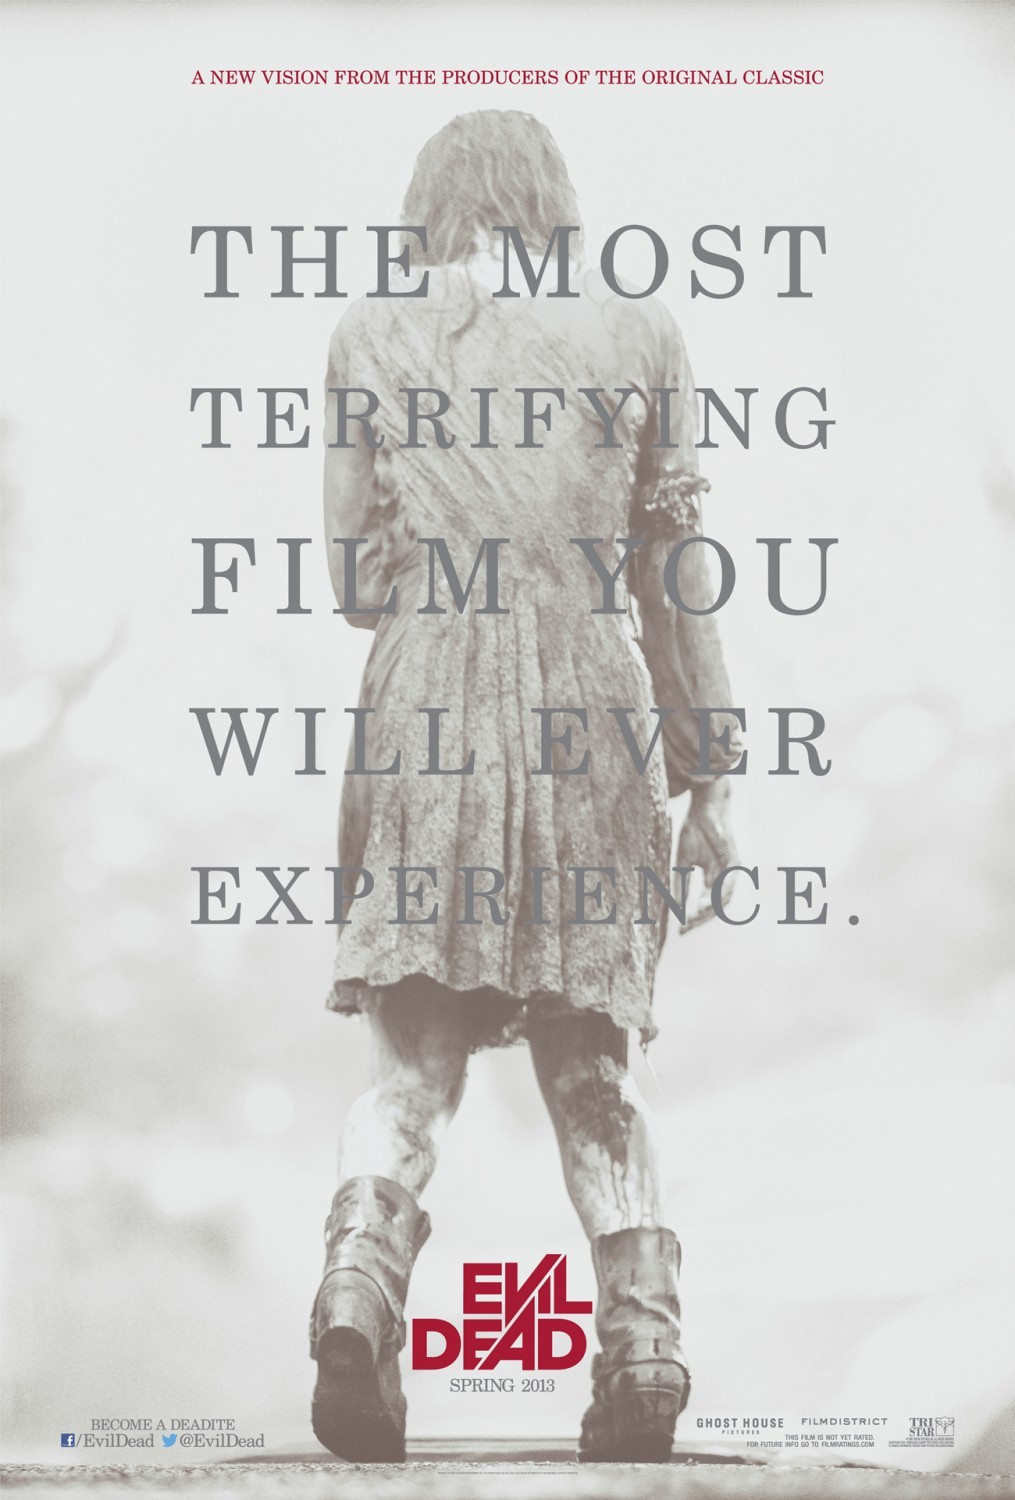 jasonfnsaint:  Just Watched: Evil Dead (2013) Wow. I loved it. I can't even begin to express how much I liked this movie. I like the campyness, I like the identification of terror, I like the gore, I like the characters… I just really, really love this. If you don't, you're a dumb butt and I hope none of your friends ever want to play with you again. In all seriousness, I didn't know what to expect. I didn't watch the trailer, I tried not to look at pictures or videos from the movie, I didn't read any reviews, nothing. I just went in hoping to see a good movie and was very pleased. The original Evil Dead from 1980 has absolutely no comparison to this movie. Of course, the details like the cabin, the possessions, and the campy lines are there, but as far as quality, characters, imagery, it's all completely different. Oh, and Ash Williams? There's no Ash Williams. Some people are bitching about that from what I've seen and I'm thinking, will there EVER be another Ash? Could any remake with a re-casting of Ash ever be worth a shit? No. There will never be another Bruce Campbell as Ash, so why even bother considering that it could happen?  Instead, we don't get a hero. We get a set of people who are trapped in pure Hell, surrounded by evil and desperate to escape. Does it make sense? No. There's a lot of shit in this movie that doesn't make a ton of sense, but it doesn't HAVE to. It's a movie. Did Avatar make sense? Did Inception? Did American Pie, for that matter? No. I didn't go into Evil Dead expecting to see a completely logical film, I just wanted to see maniacal madness and macabre gore. And, you know, I was satisfied. 10/10, would recommend. No complaints, no criticisms, just another great Sam Raimi film that I can't wait to own on BluRay.